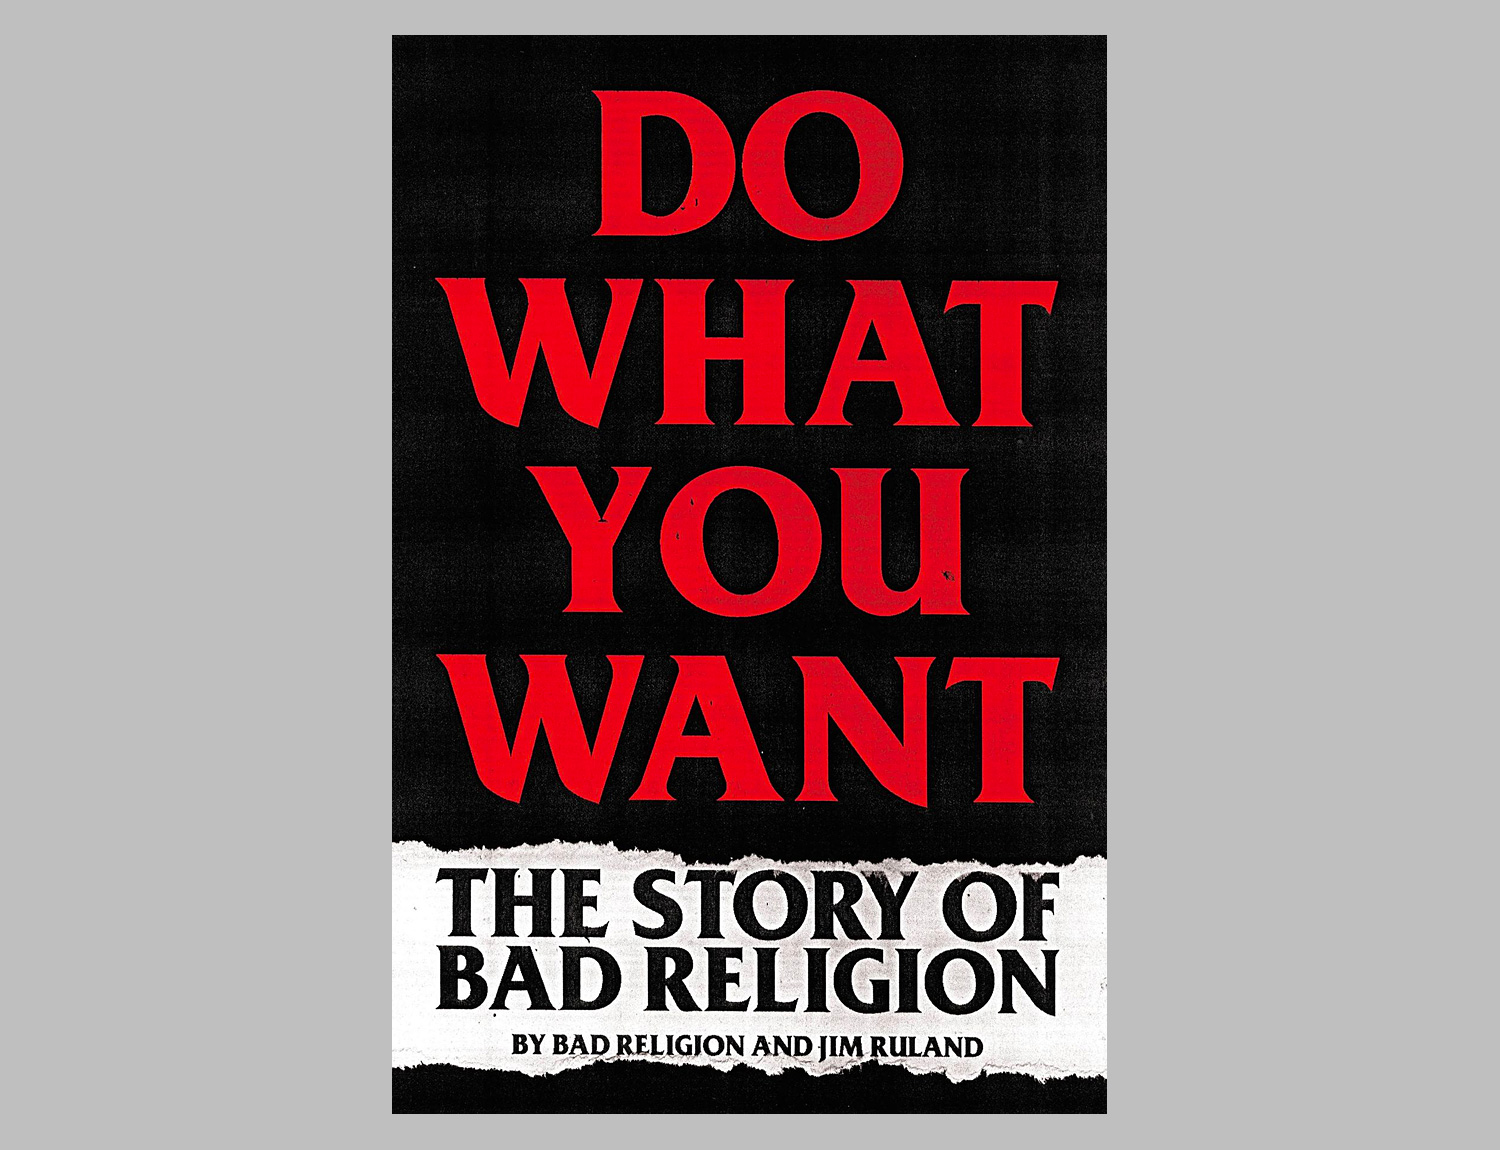 Do What You Want: The Story of Bad Religion at werd.com